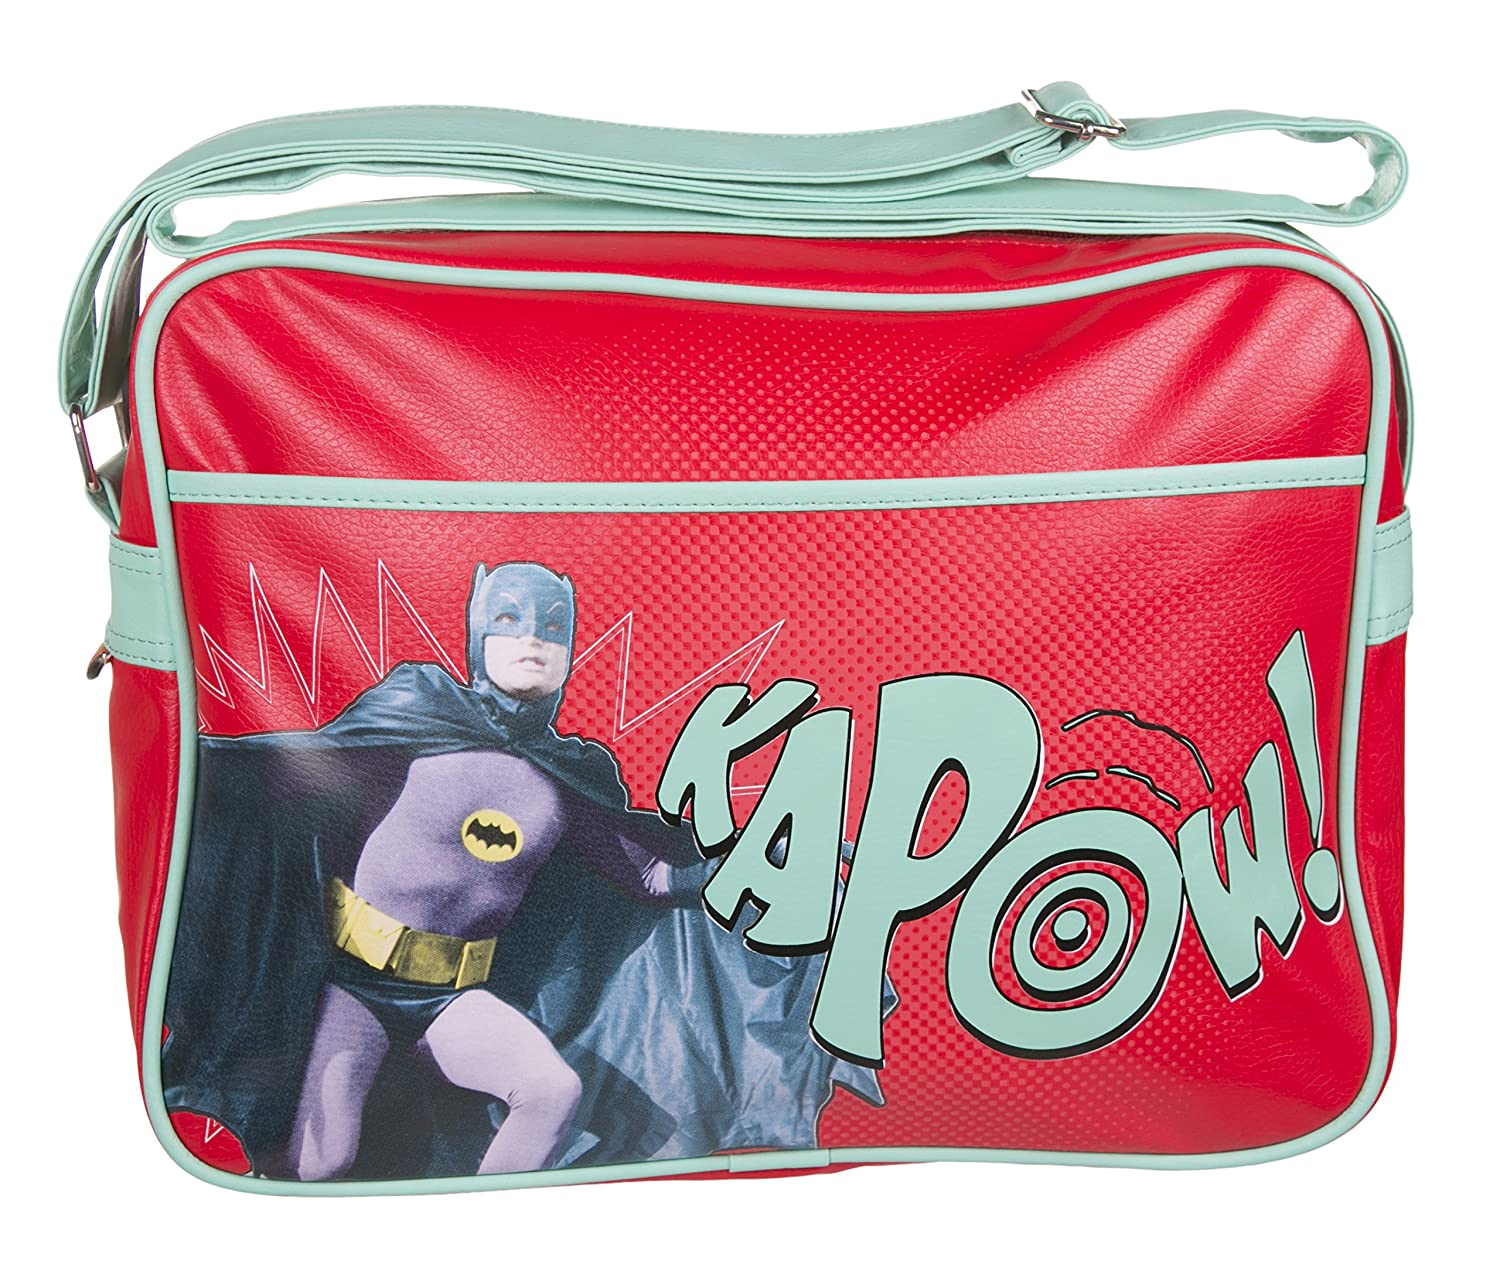 Red Batman Kapow Retro Messenger Bag Half Moon Bay